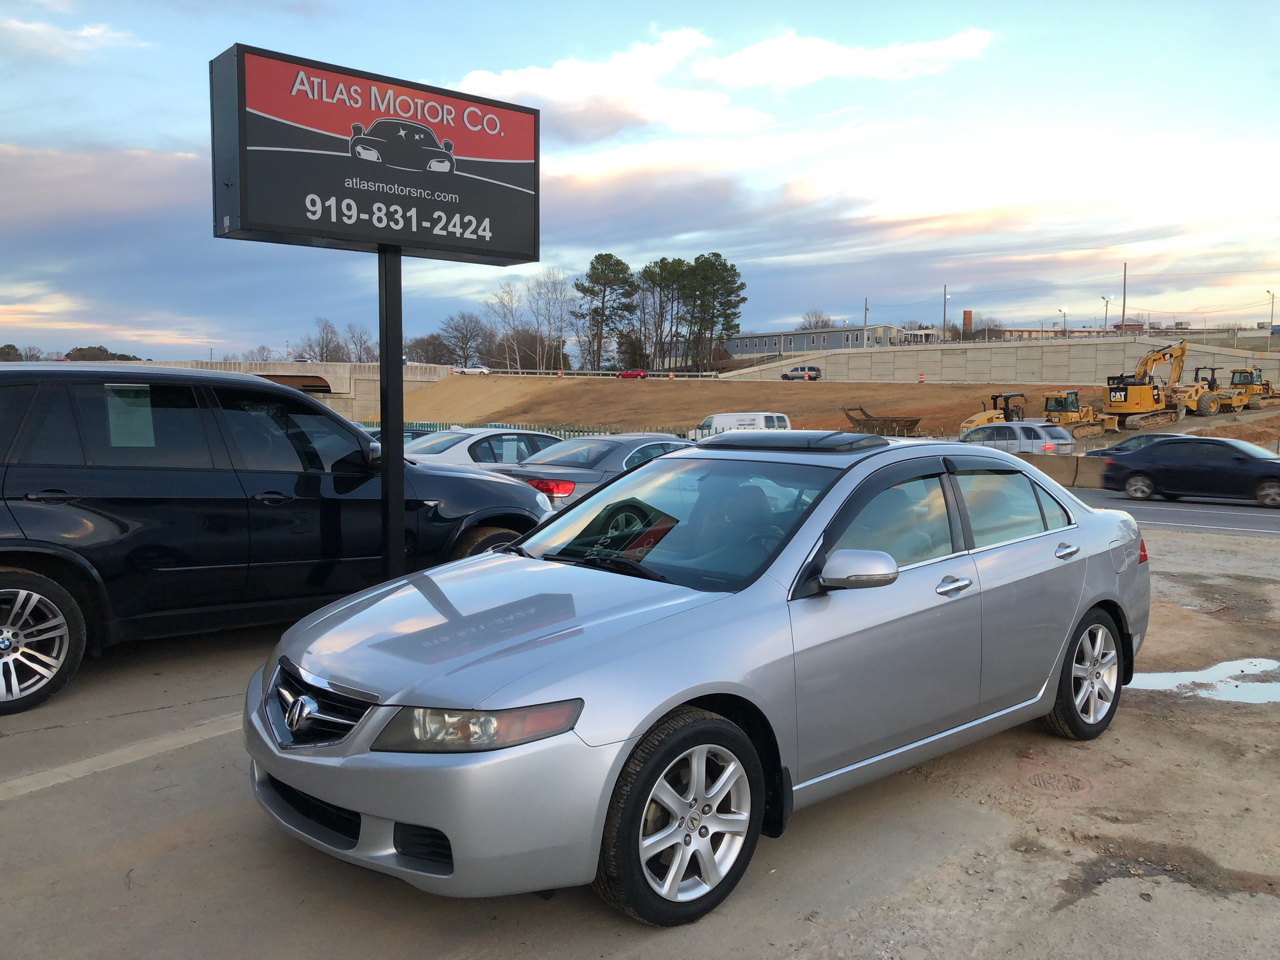 2005 Acura TSX 5-speed AT